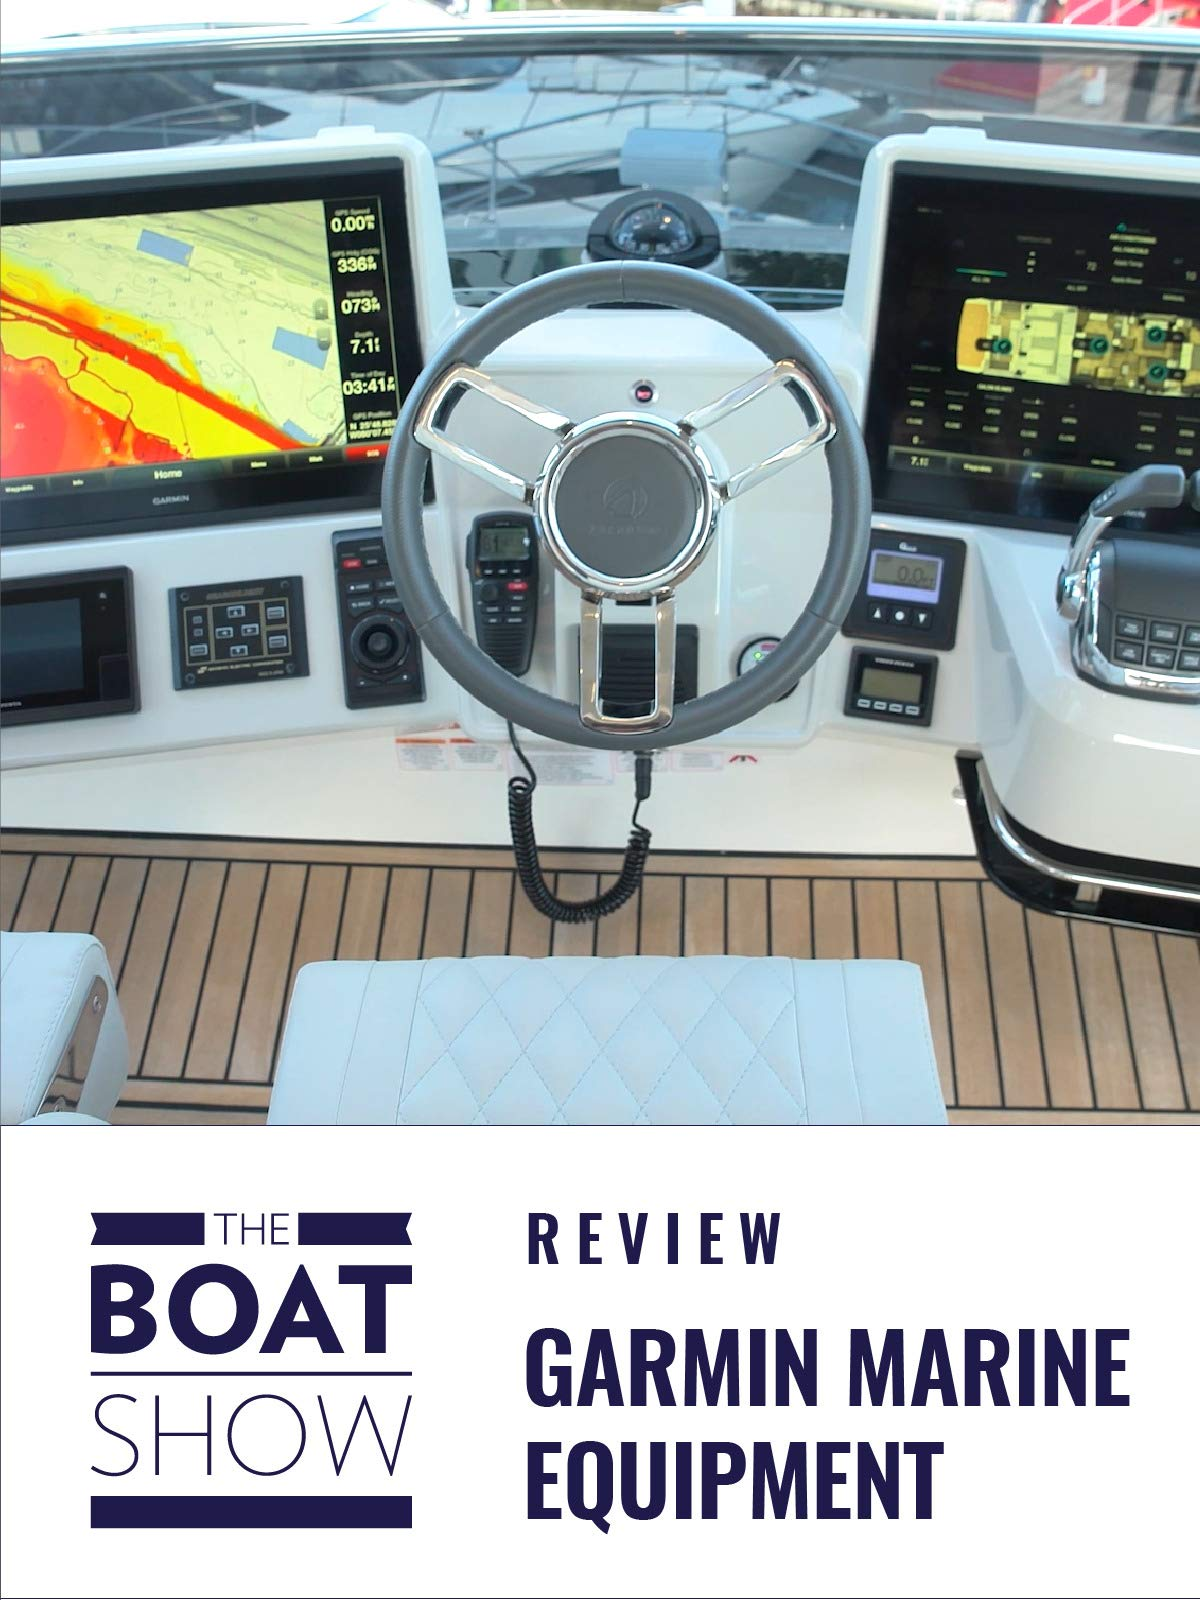 Garmin Marine Equipment - The Boat Show